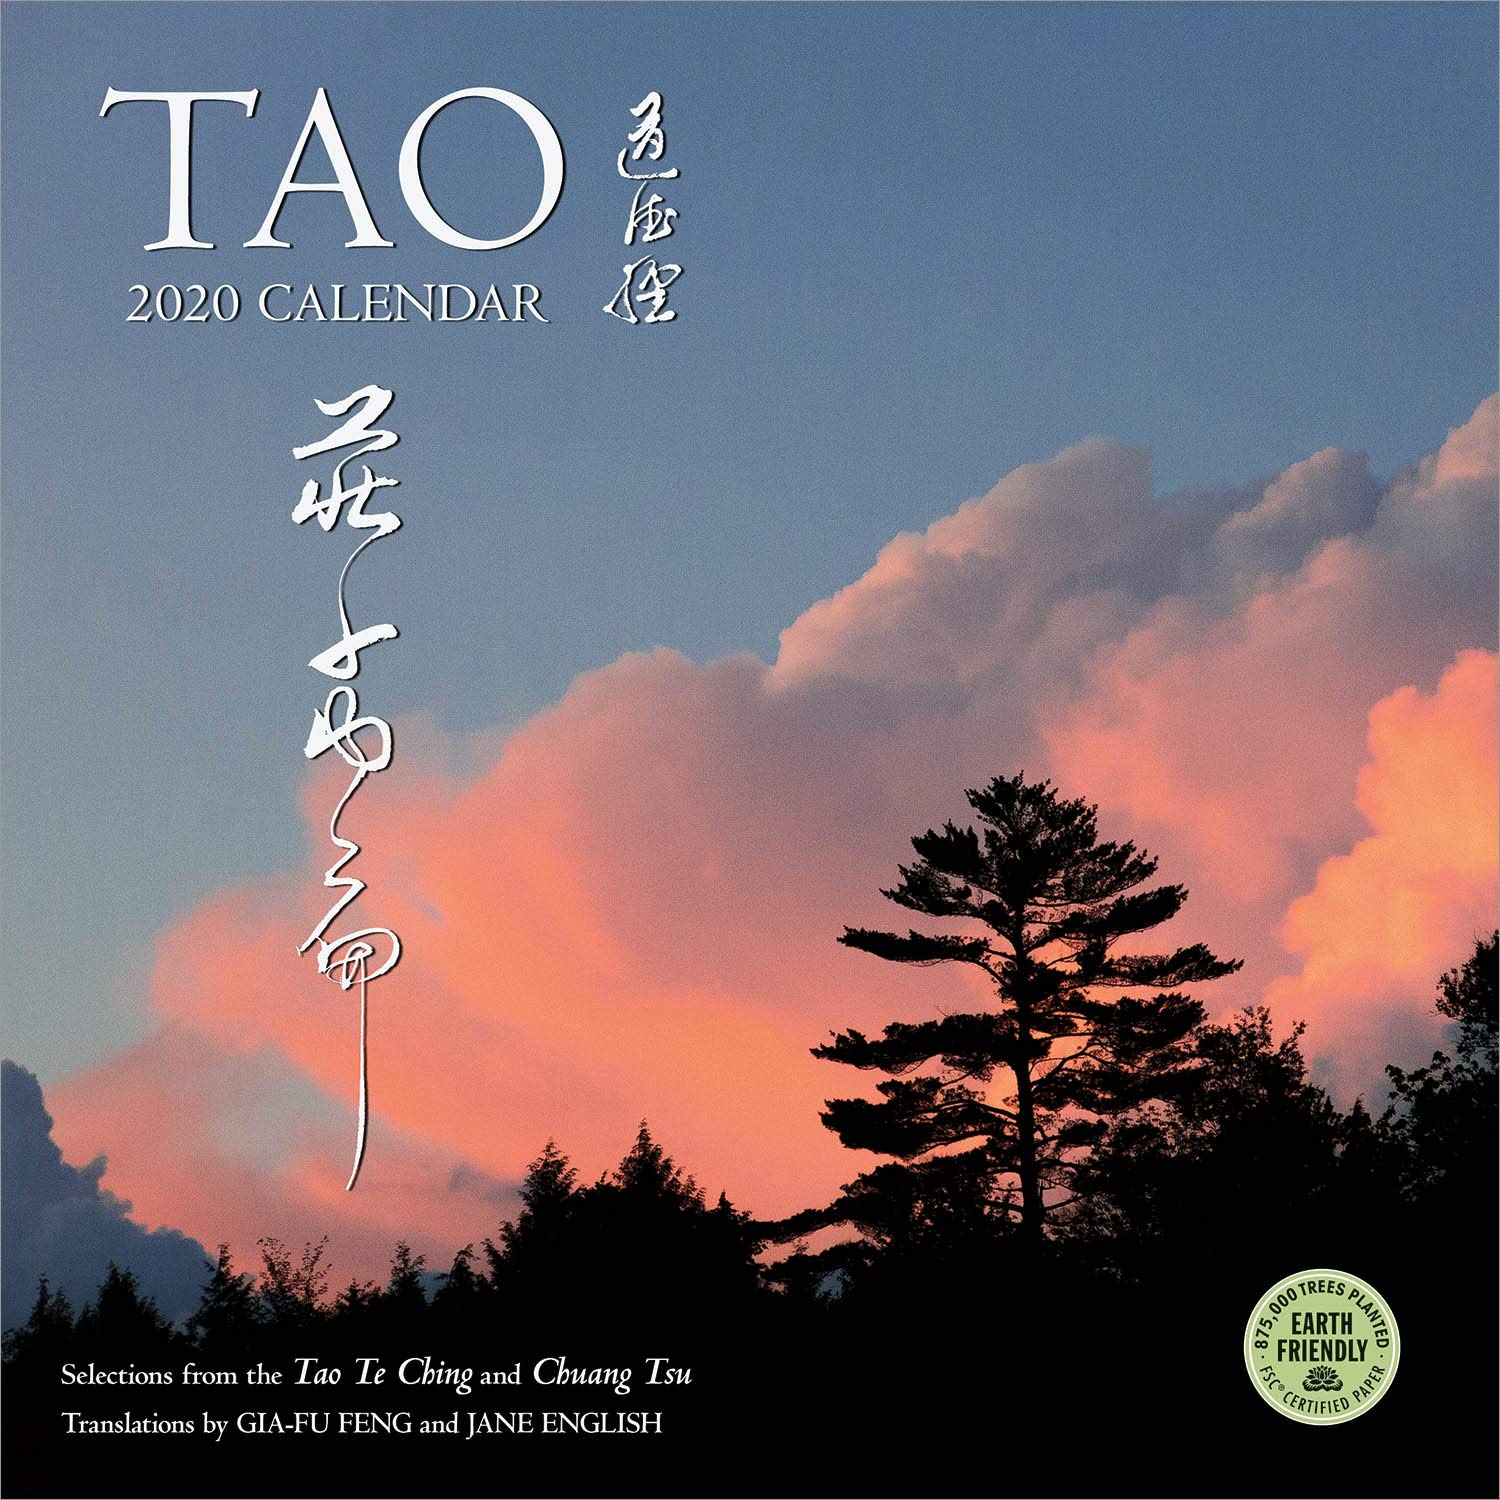 Tao 2020 Wall Calendar: Selections from the Tao Te Ching and Chuang Tsu: Inner Chapters by Amber Lotus Publishing